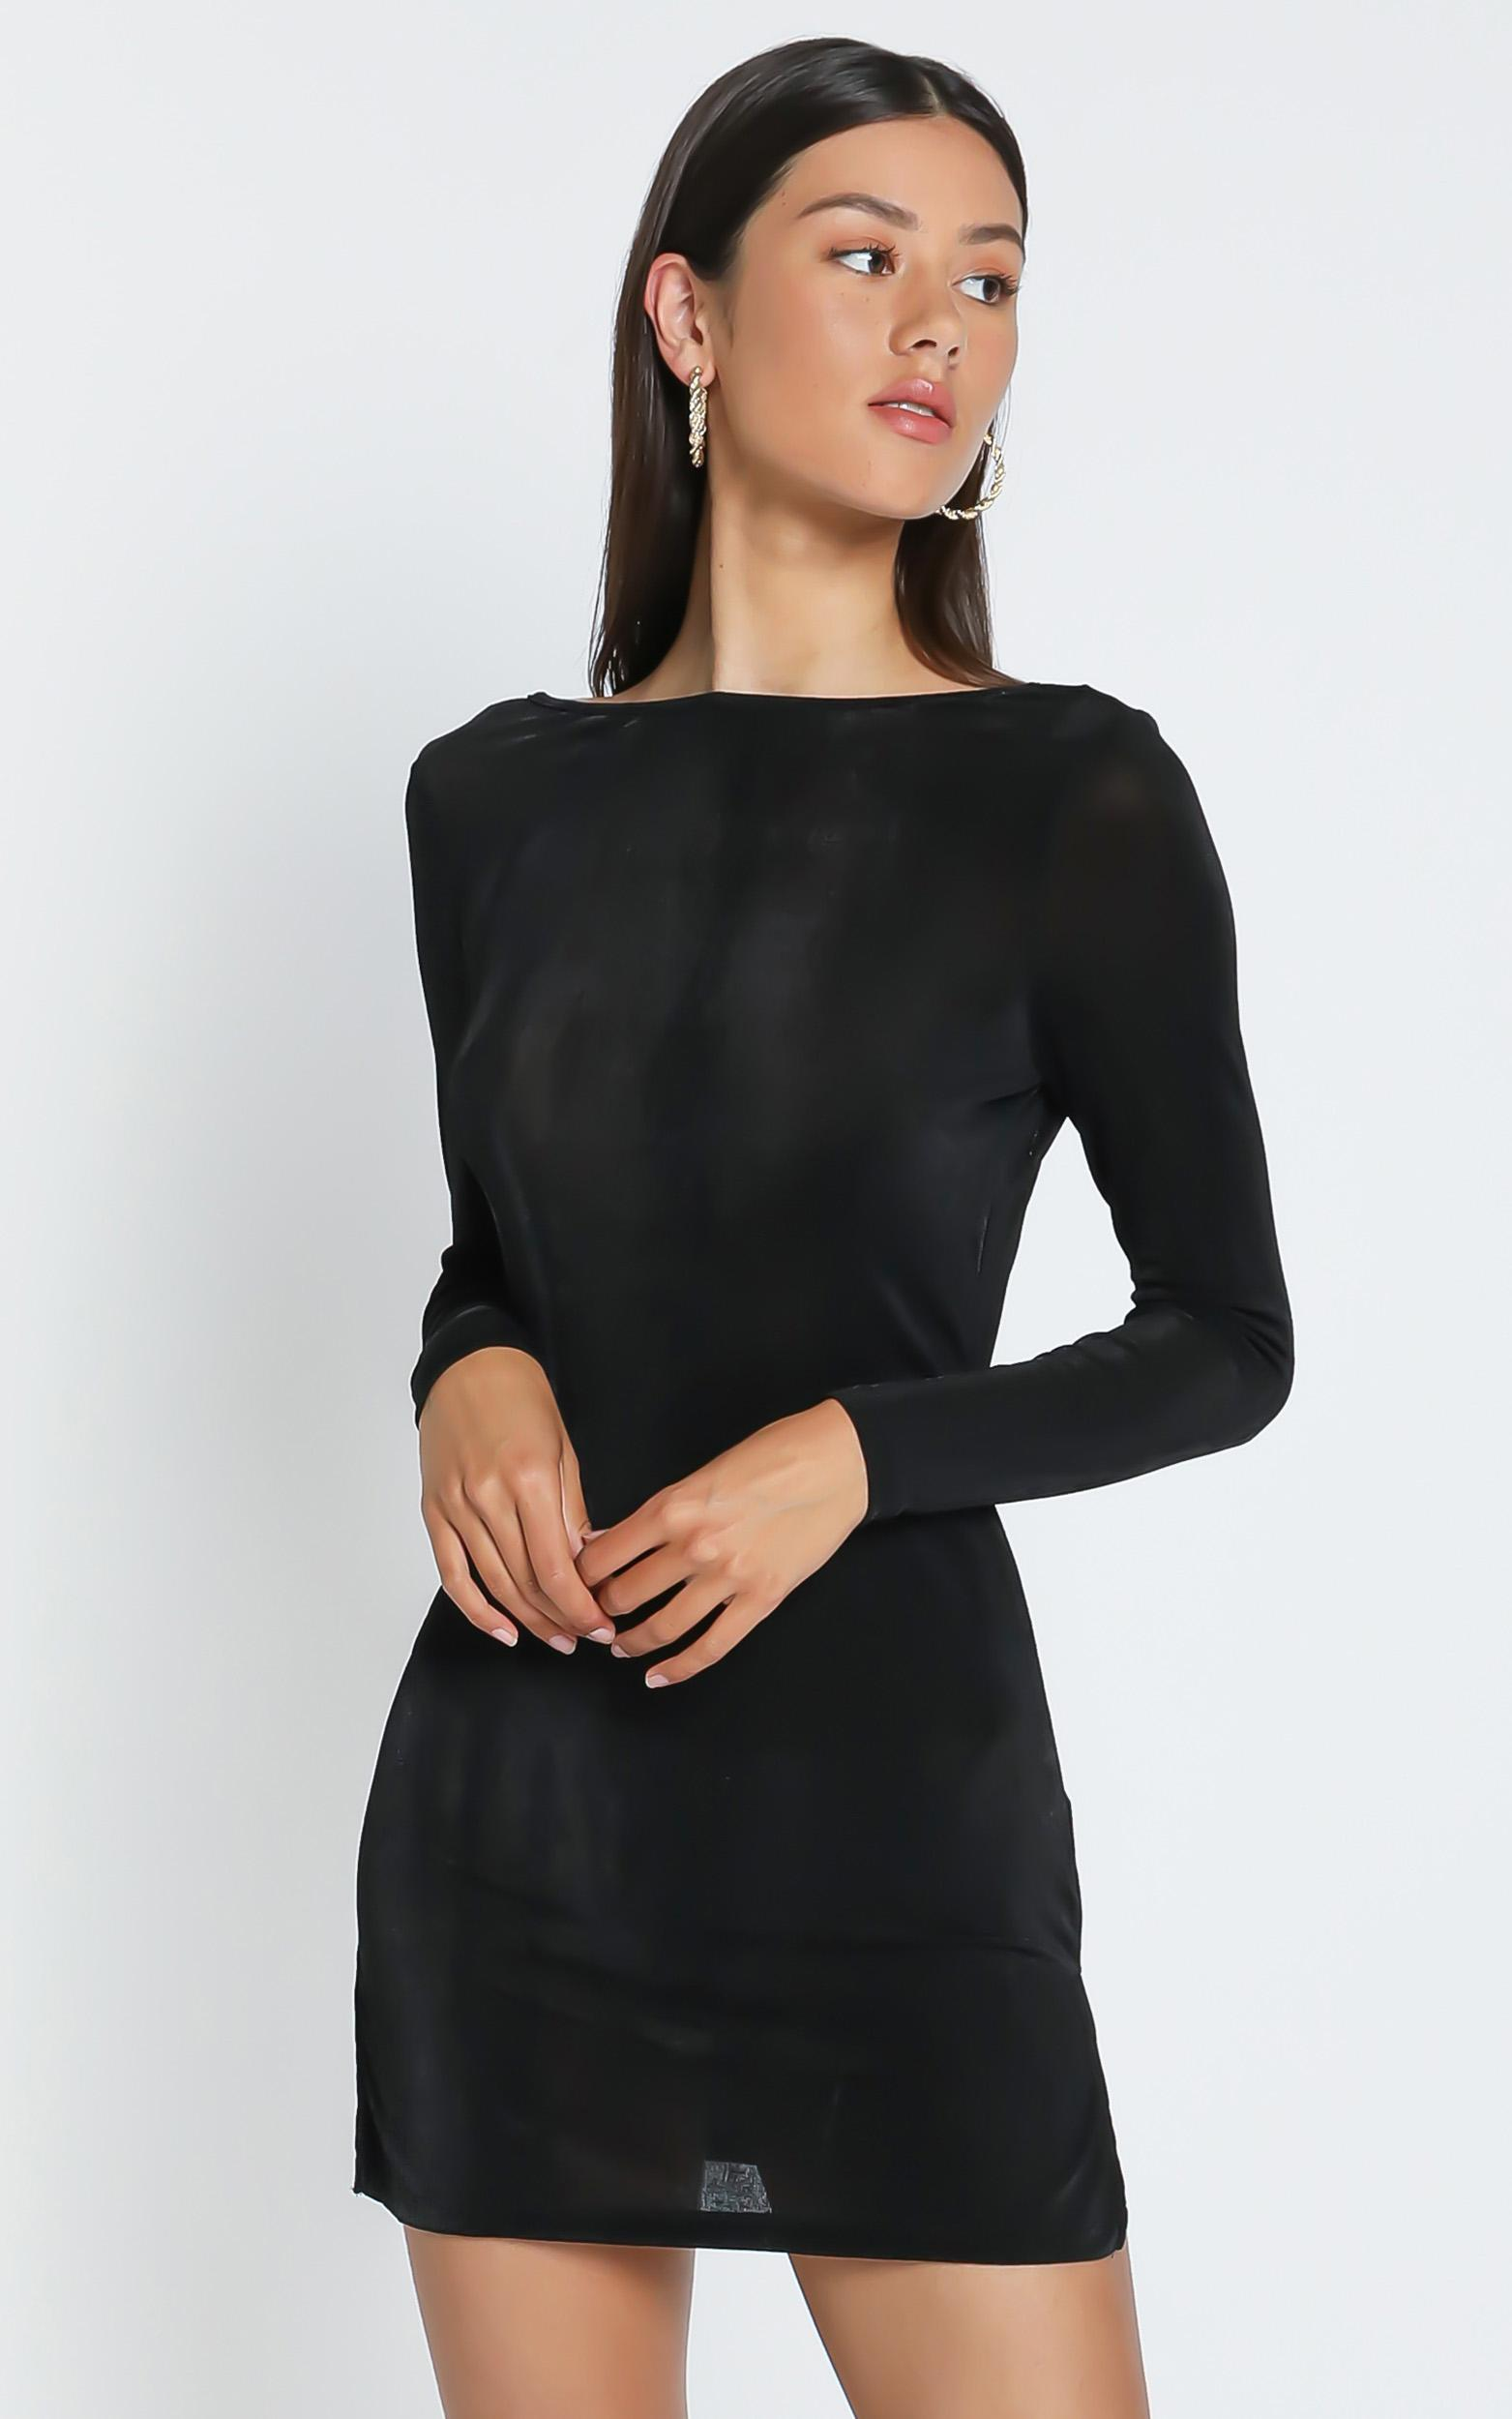 Lioness - Montana Mini Dress in Black - 4 (XXS), BLK1, hi-res image number null